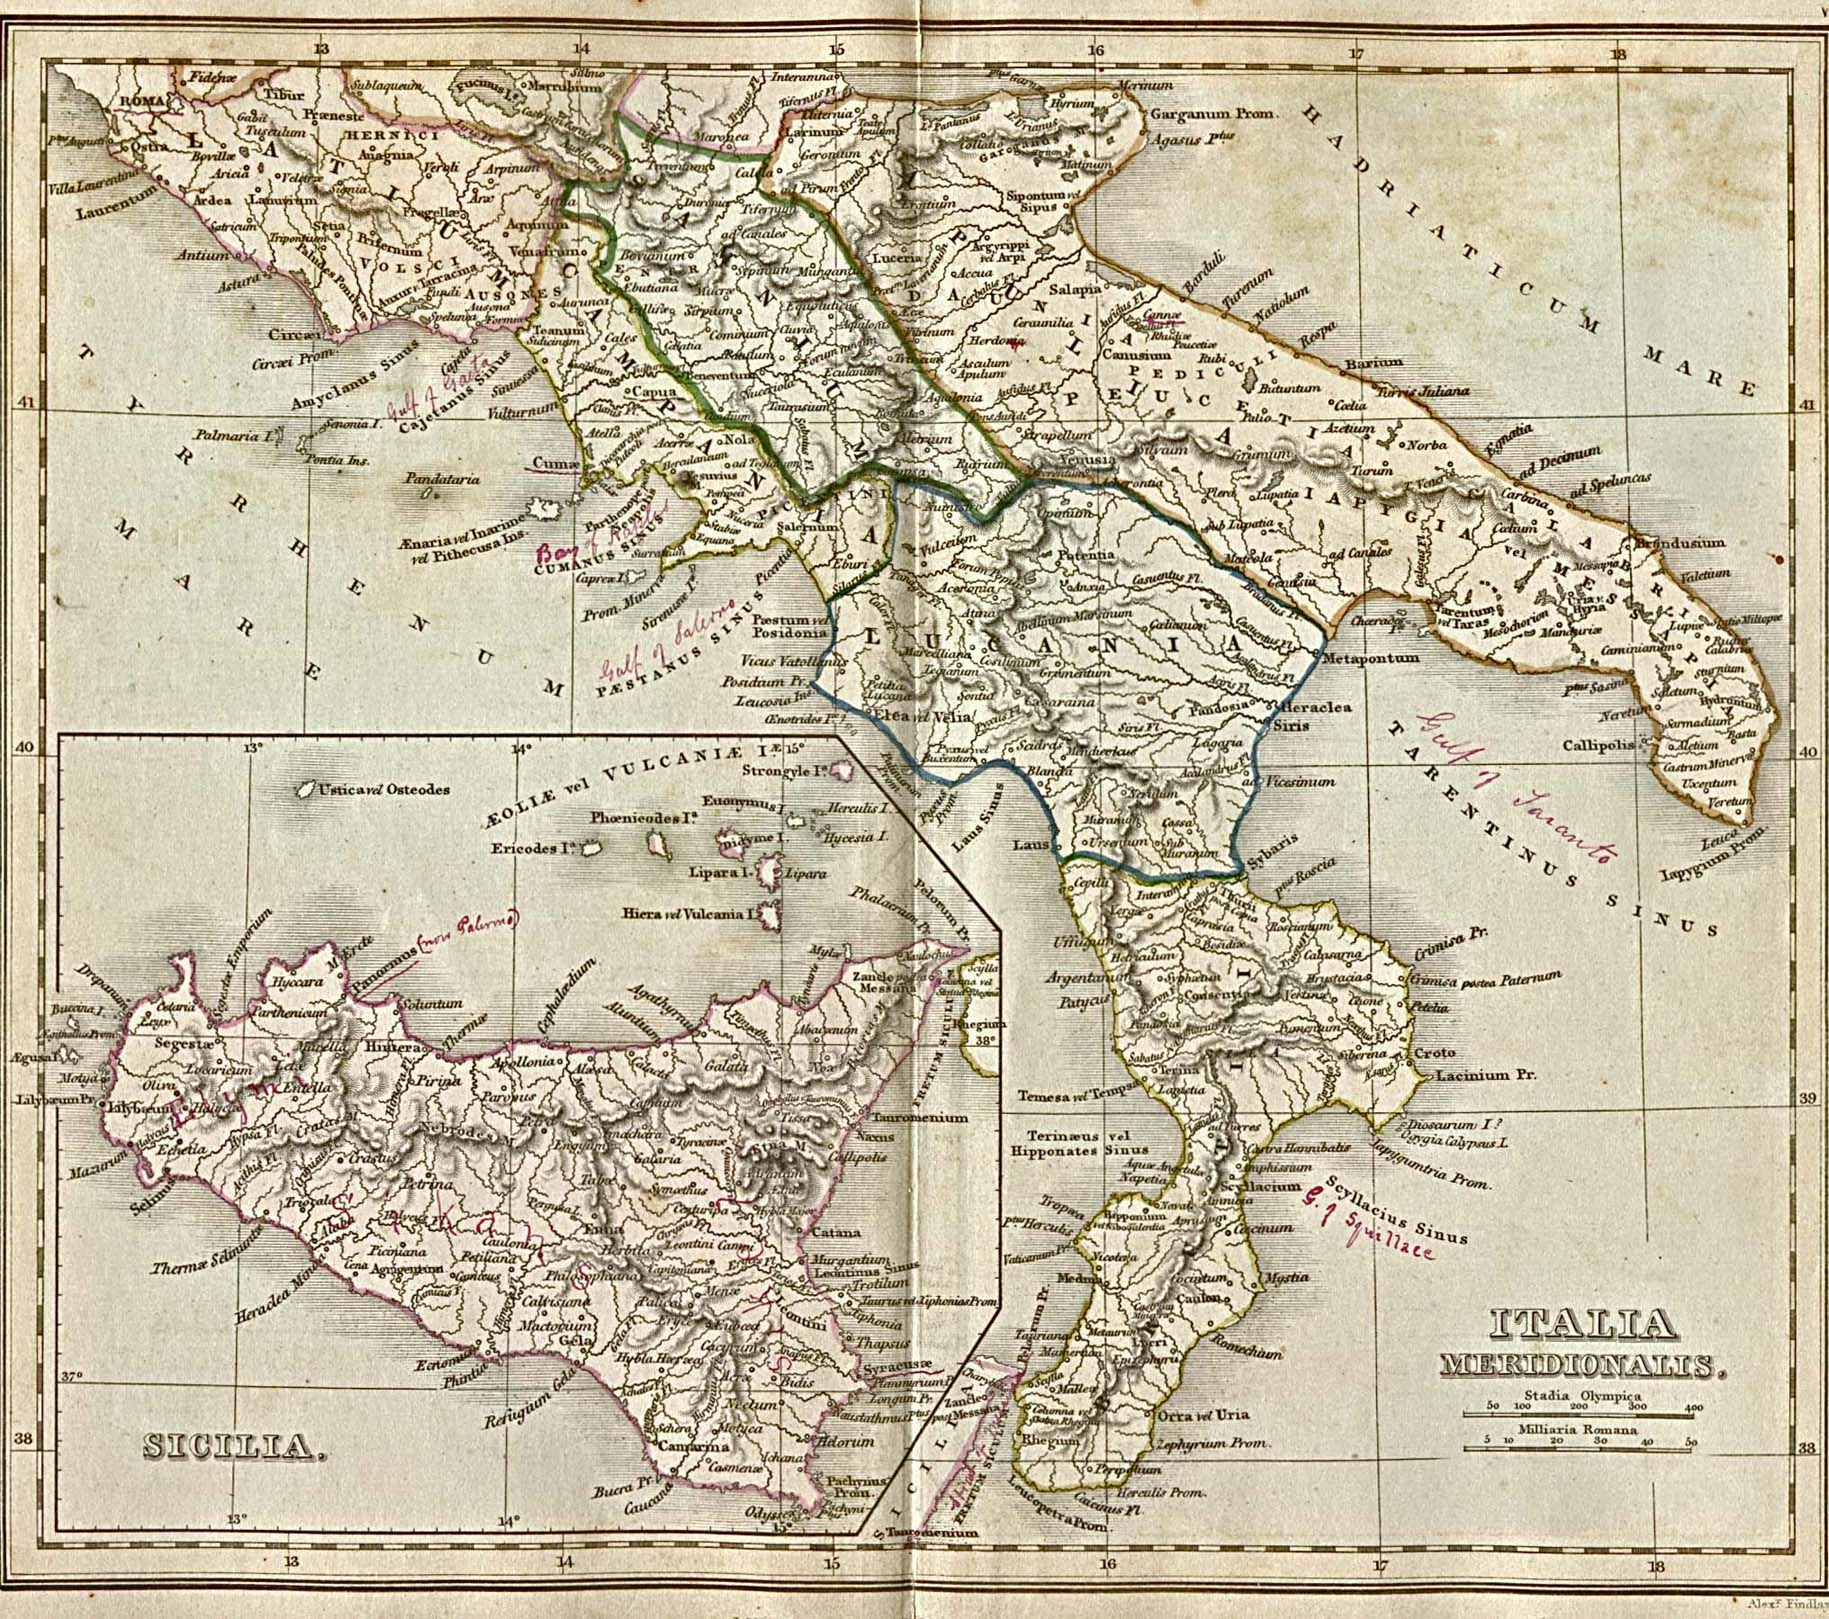 1Up Travel Historical Maps of Europe Italia Ancient Italy 645K From qu